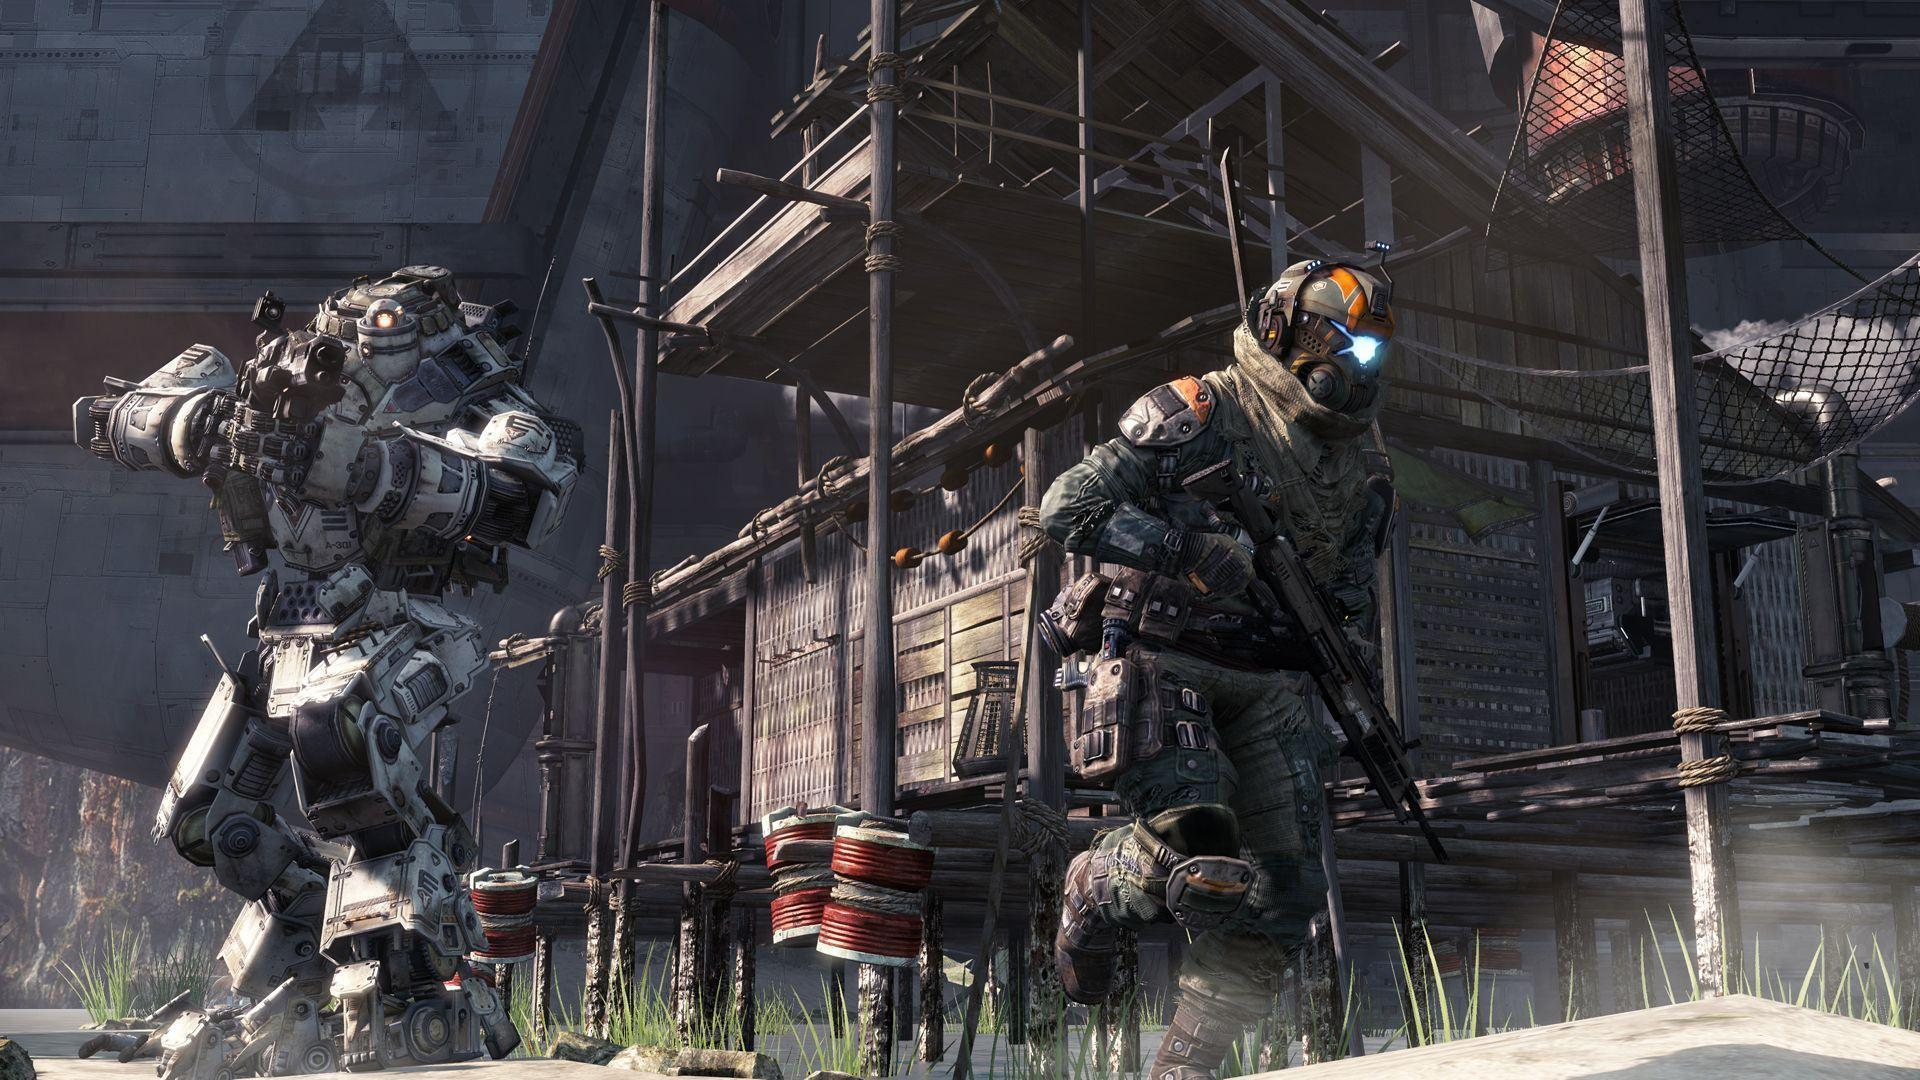 Titanfall 2 Sales Struggle, Battlefield 1 Has Strong Launch